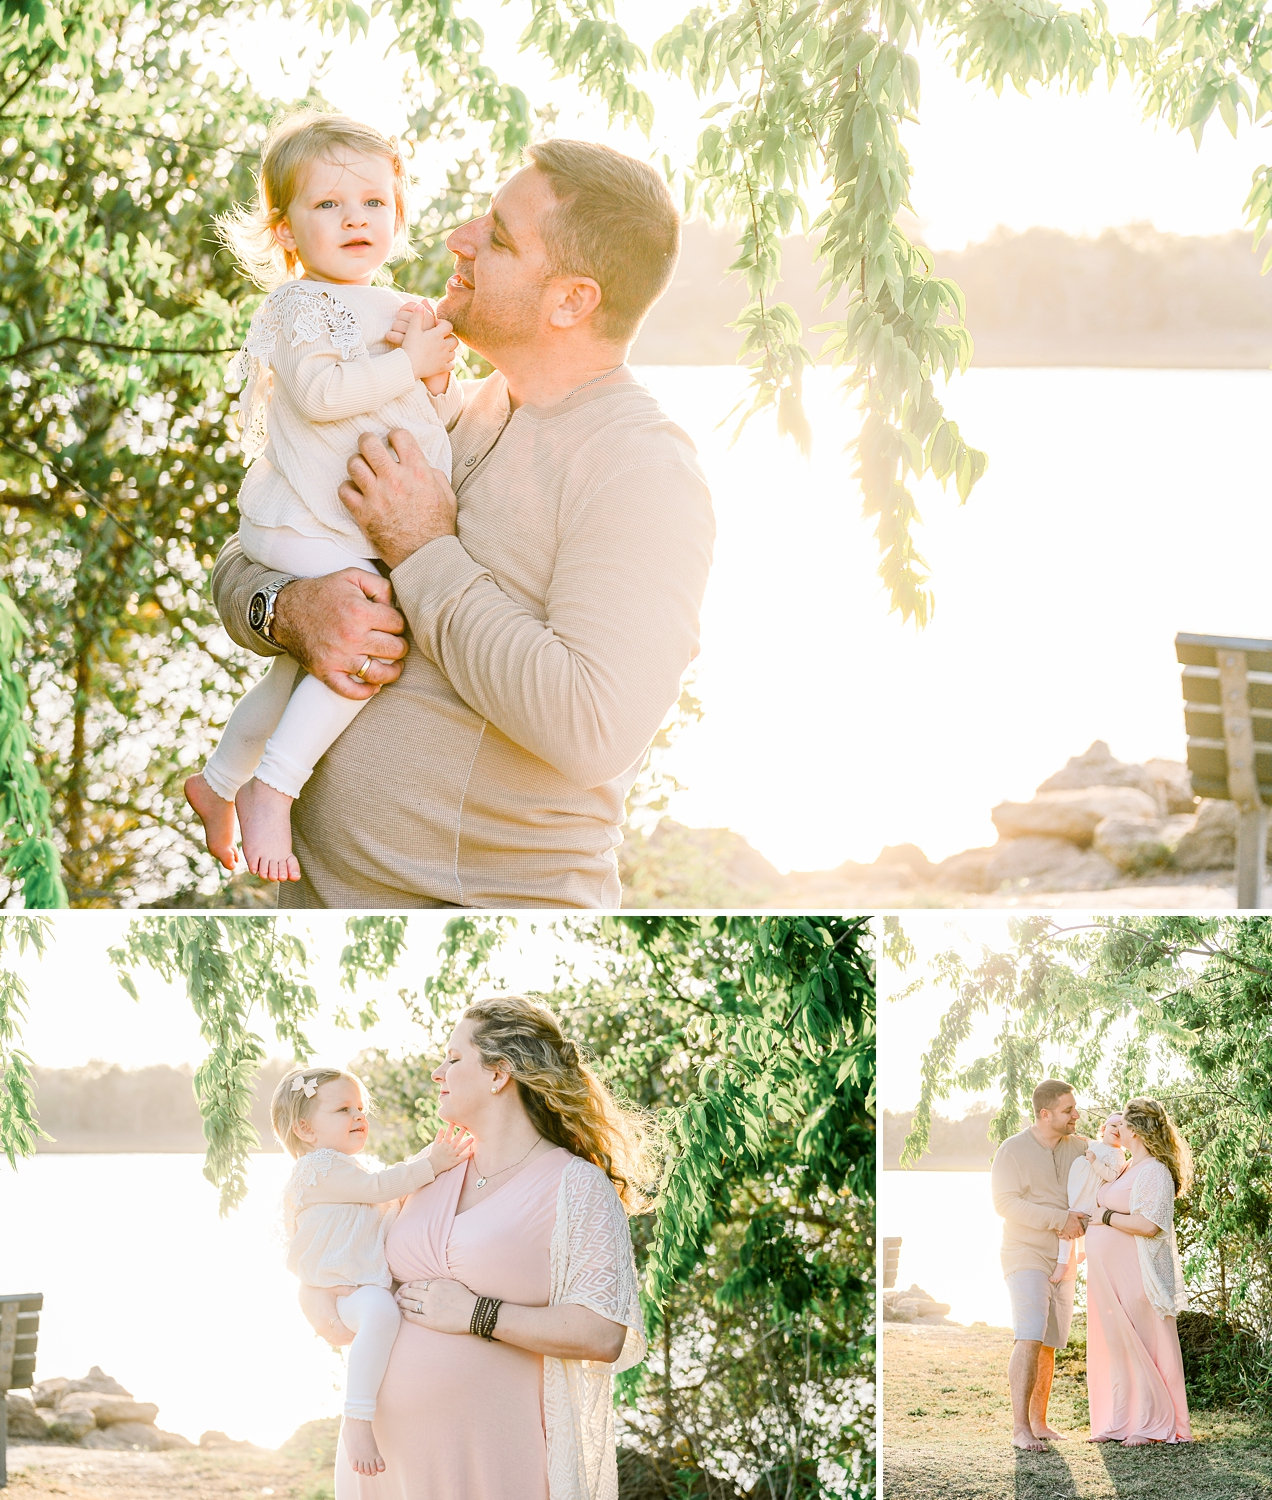 image collage, family maternity session, Saint Augustine, Florida, Ryaphotos